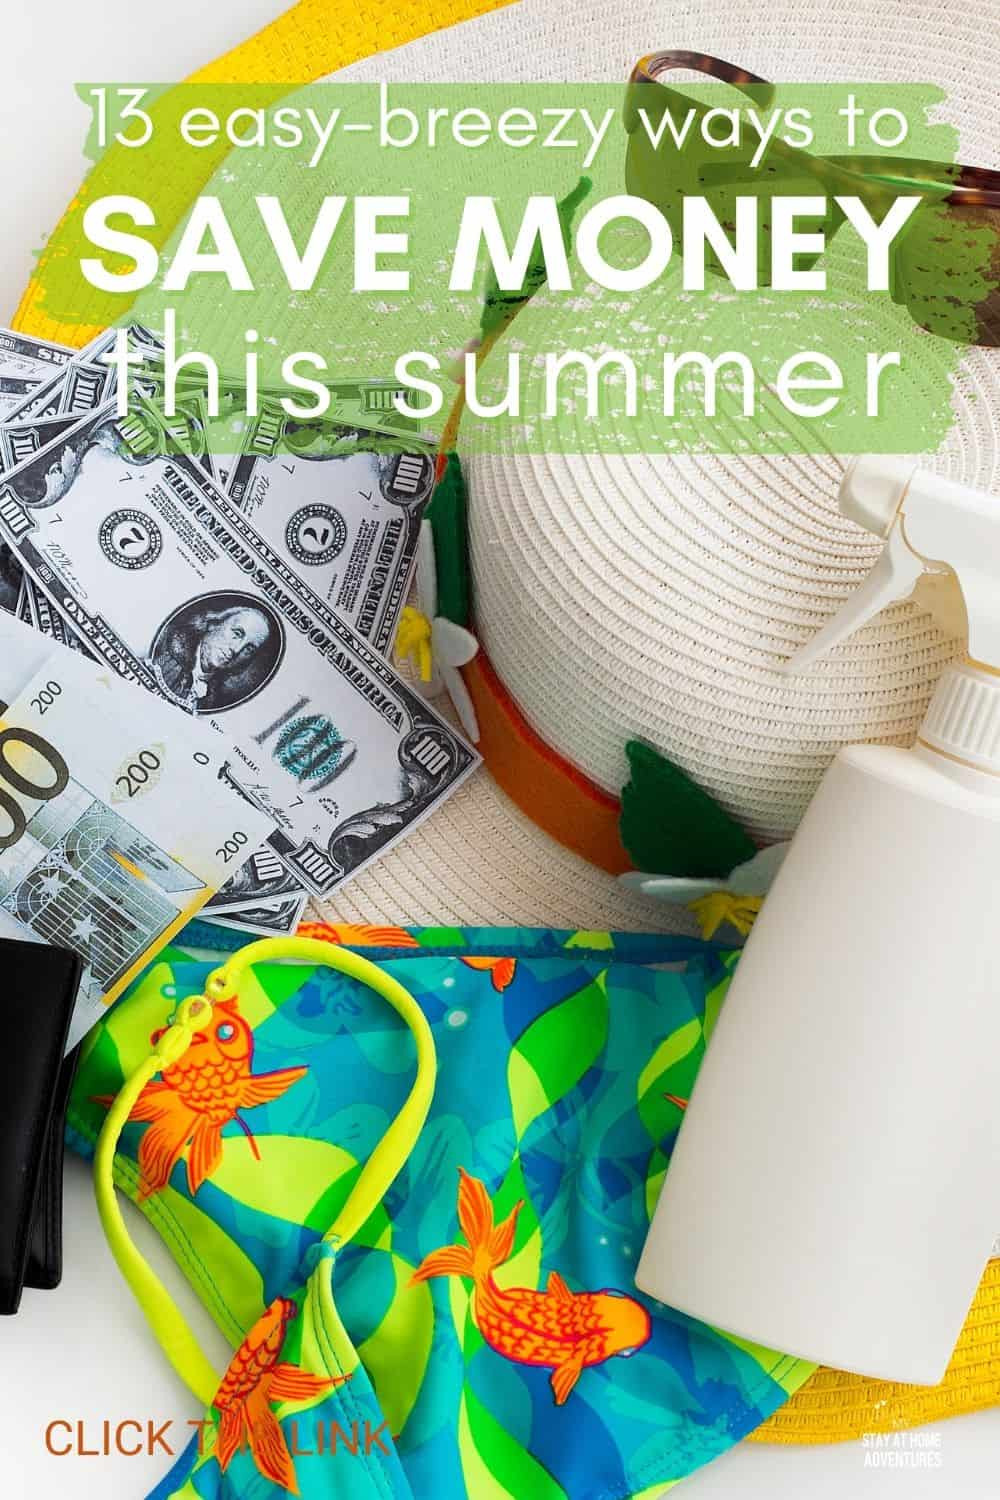 Feeling overwhelmed by summer expenses? Follow our simple tips, and you'll be saving money without even noticing. Don't forget to tell us your favorite tip! #moneysavingtips #savemoney #summer via @mystayathome